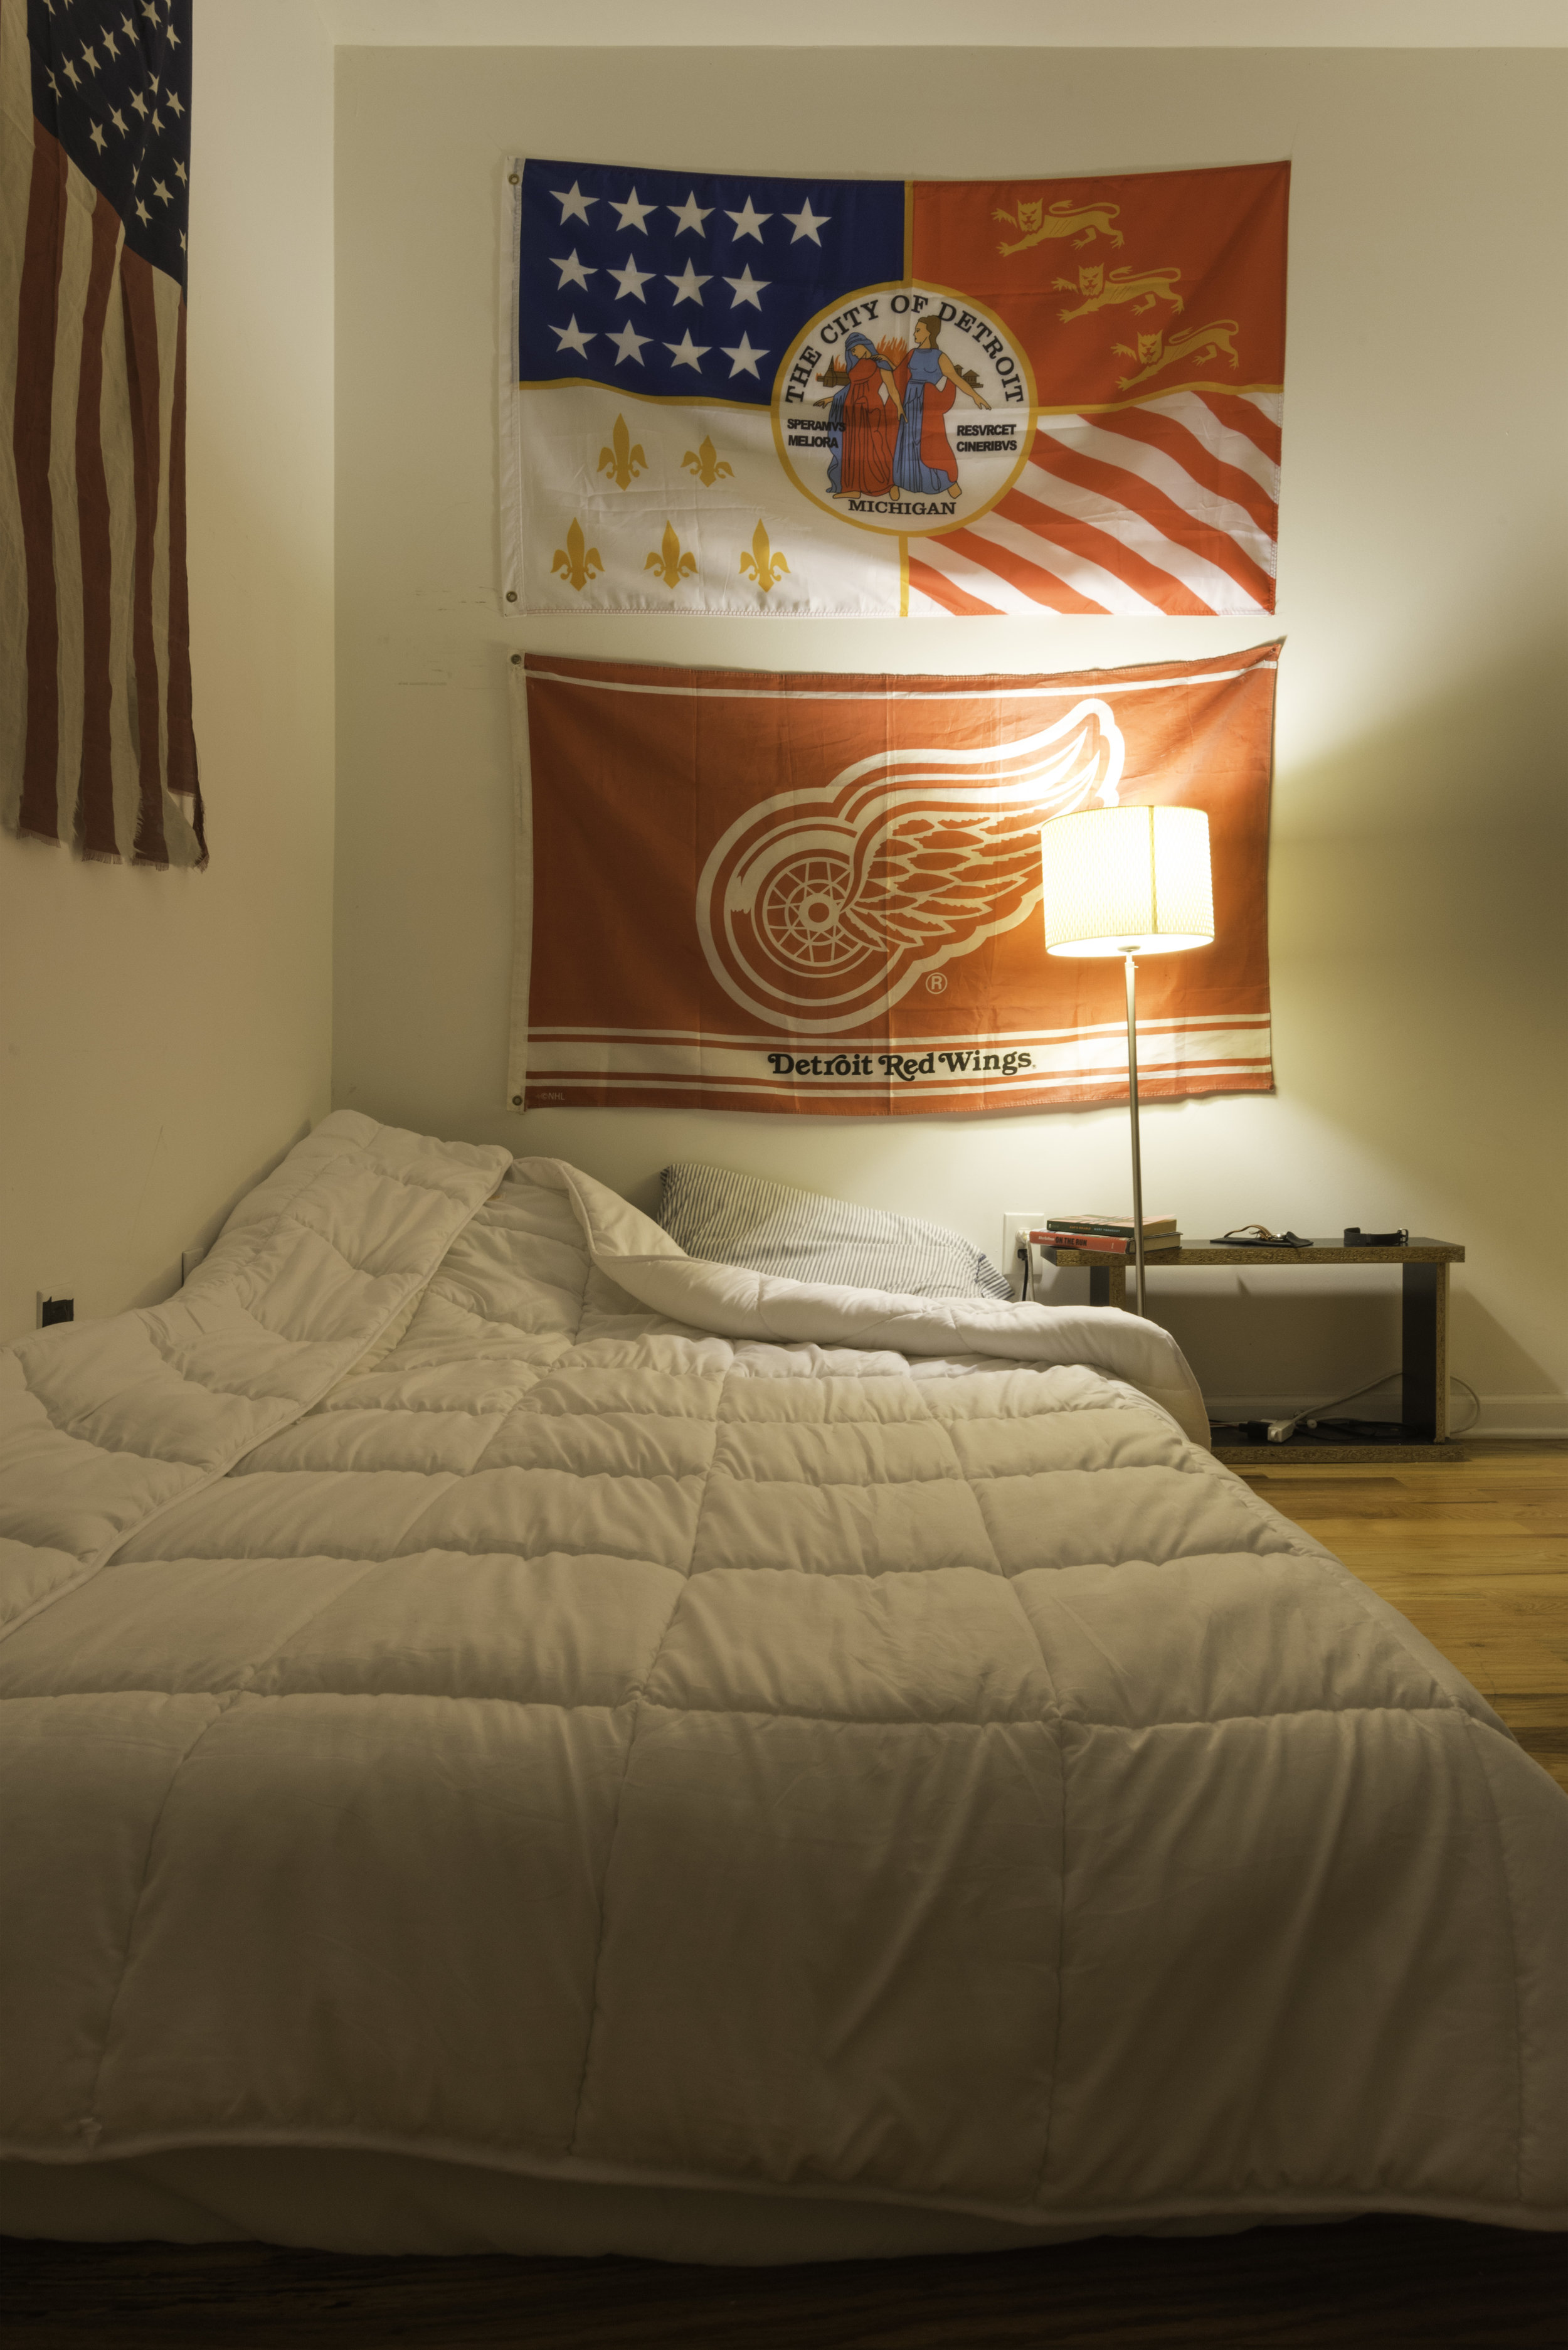 Seriously -flags do wonders to make your room actually feel like home.